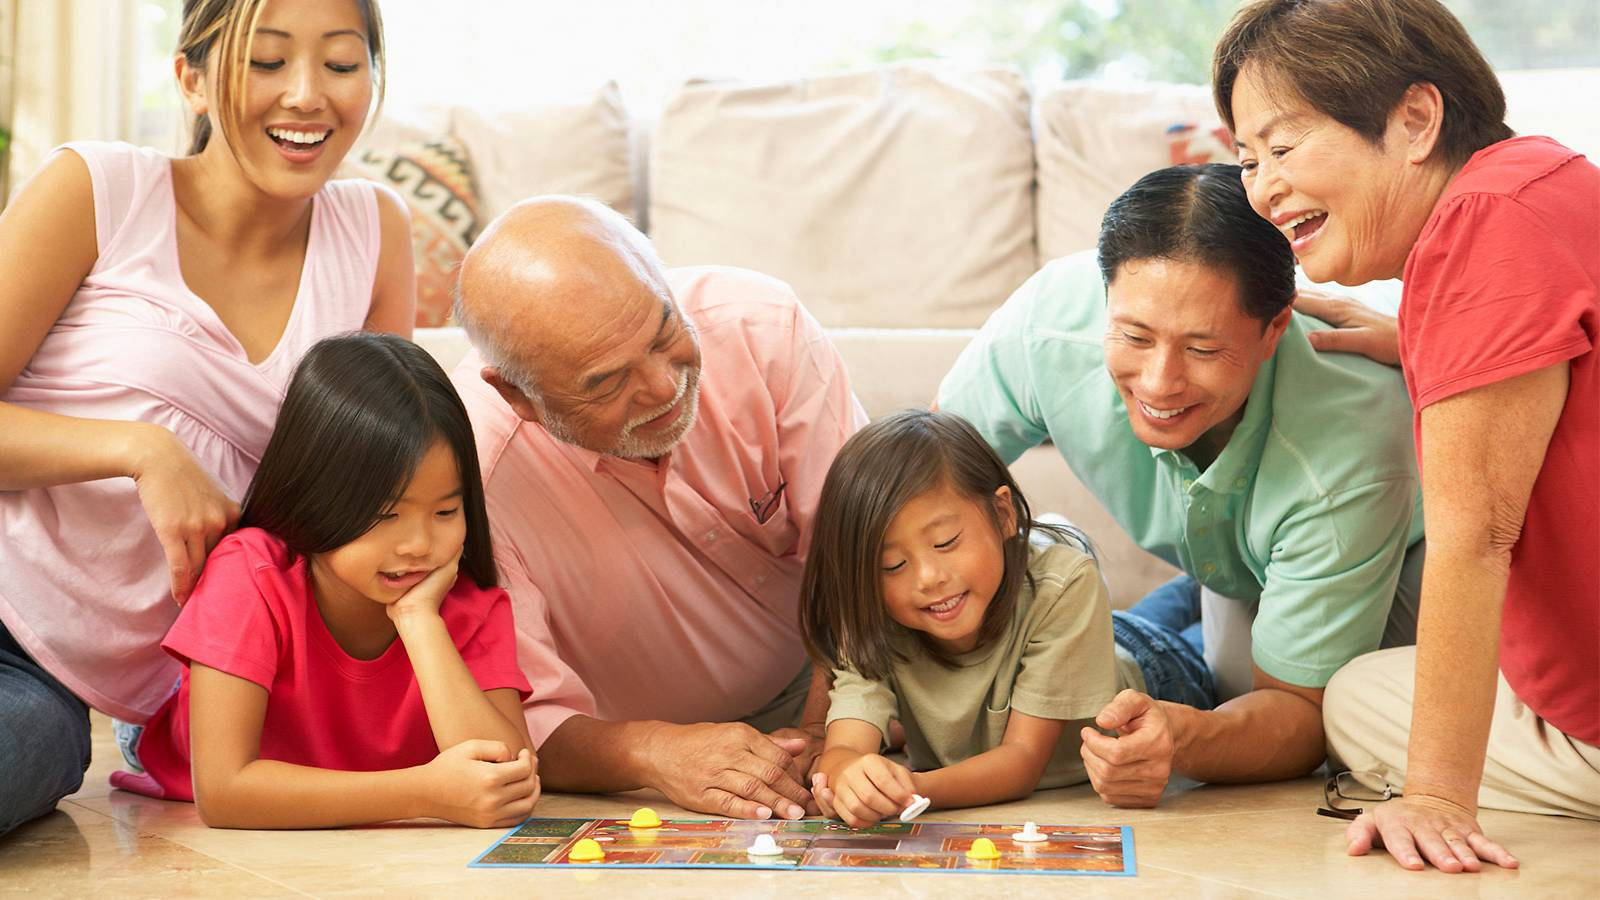 Kids-Buyer's-Guide-–-Top-10-family-board-games-main